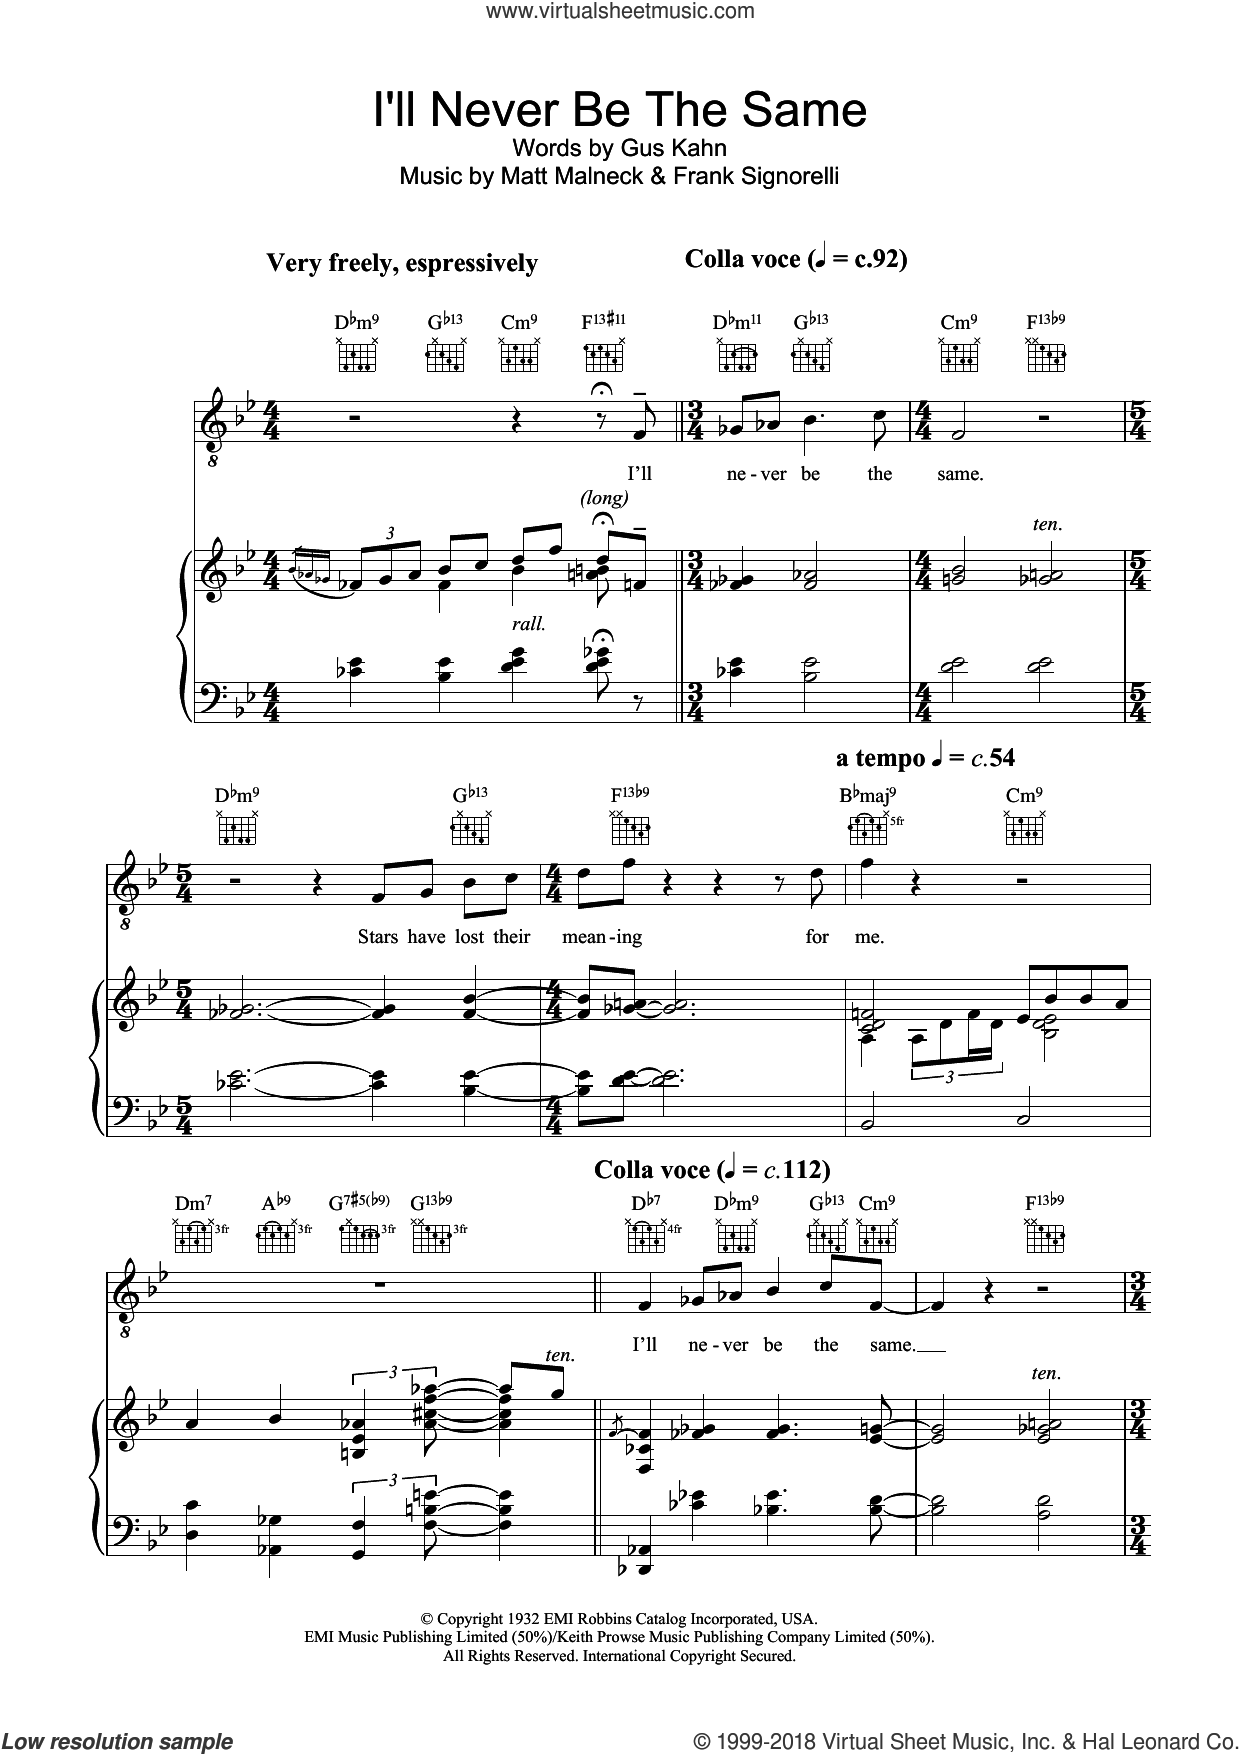 I'll Never Be The Same sheet music for voice, piano or guitar by Diana Krall, Frank Signorelli, Gus Kahn and Matt Malneck, intermediate skill level